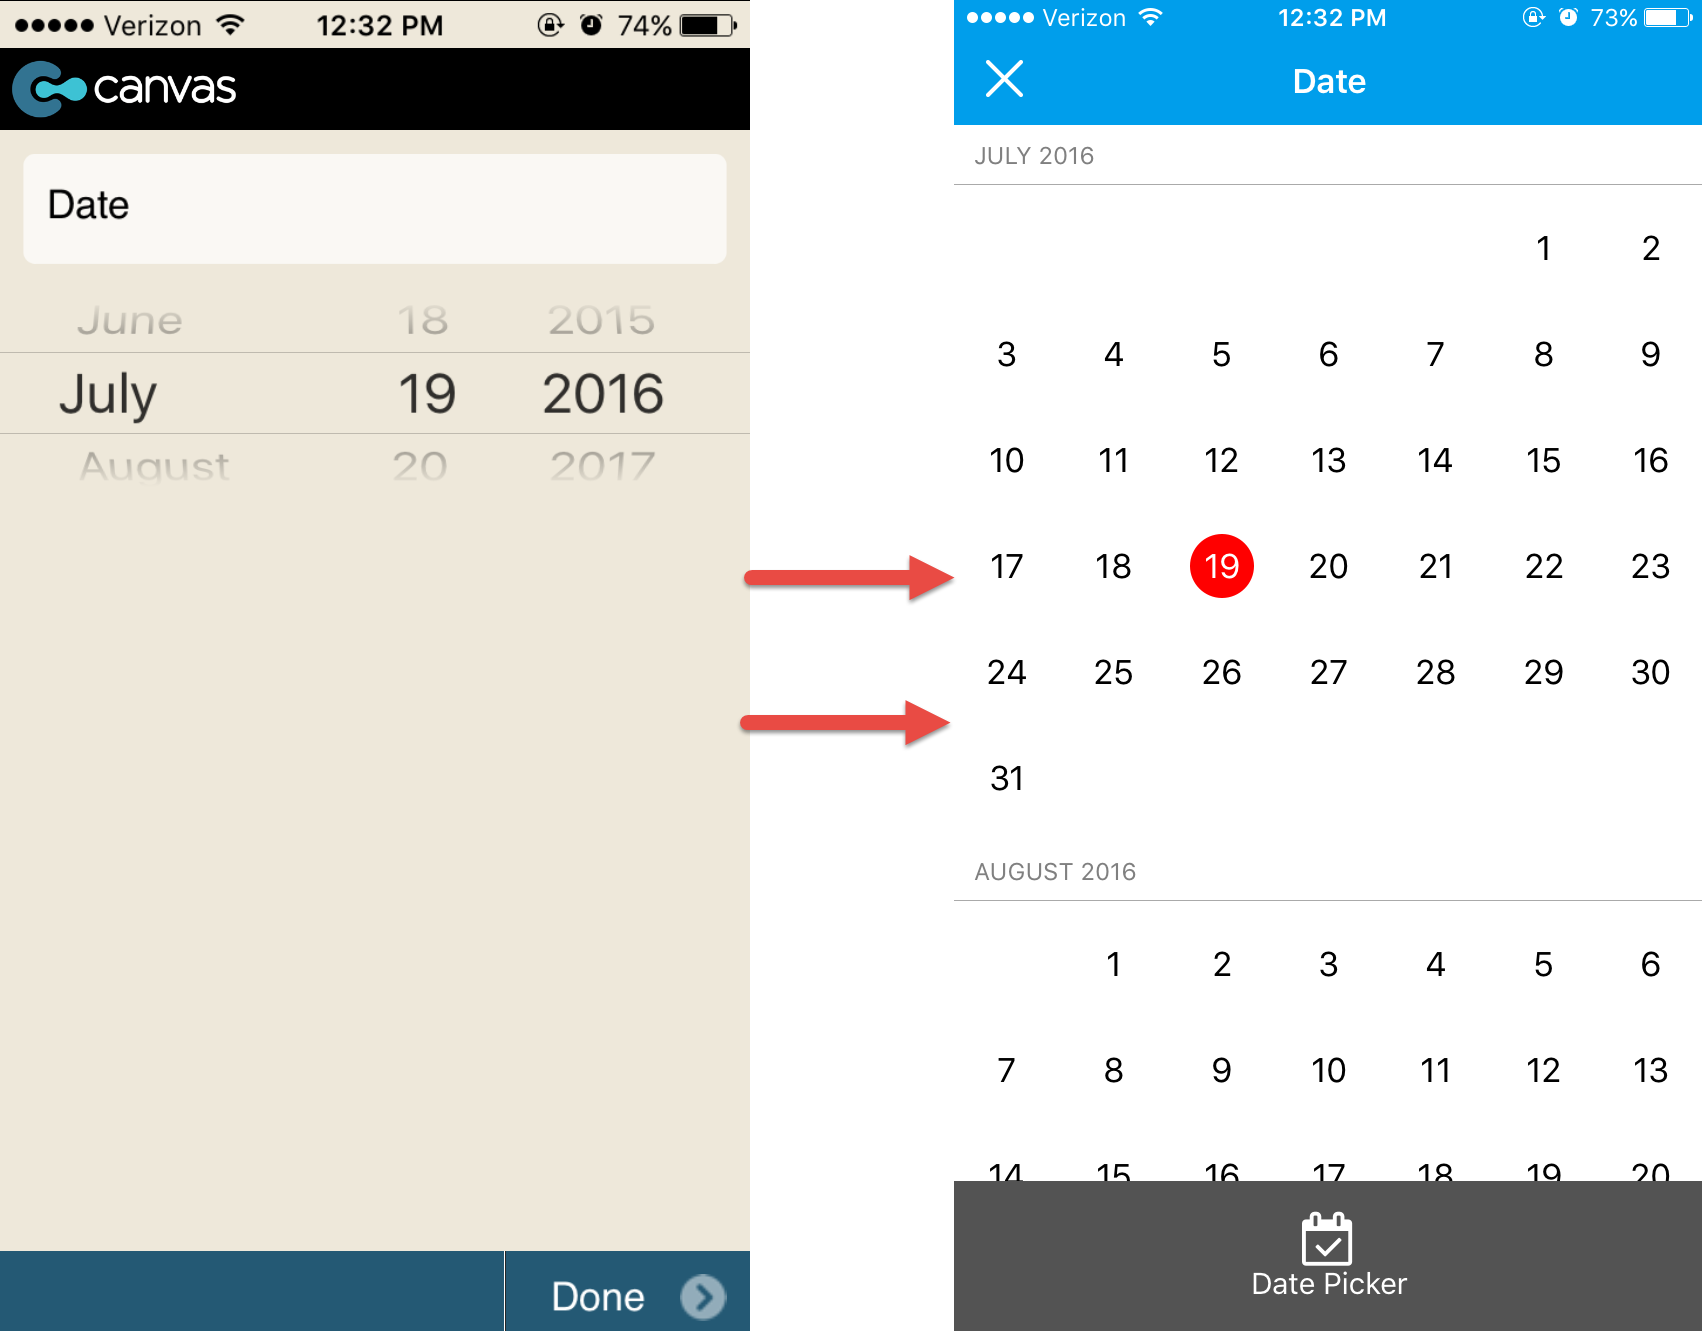 Check out the new GoCanvas calendar view